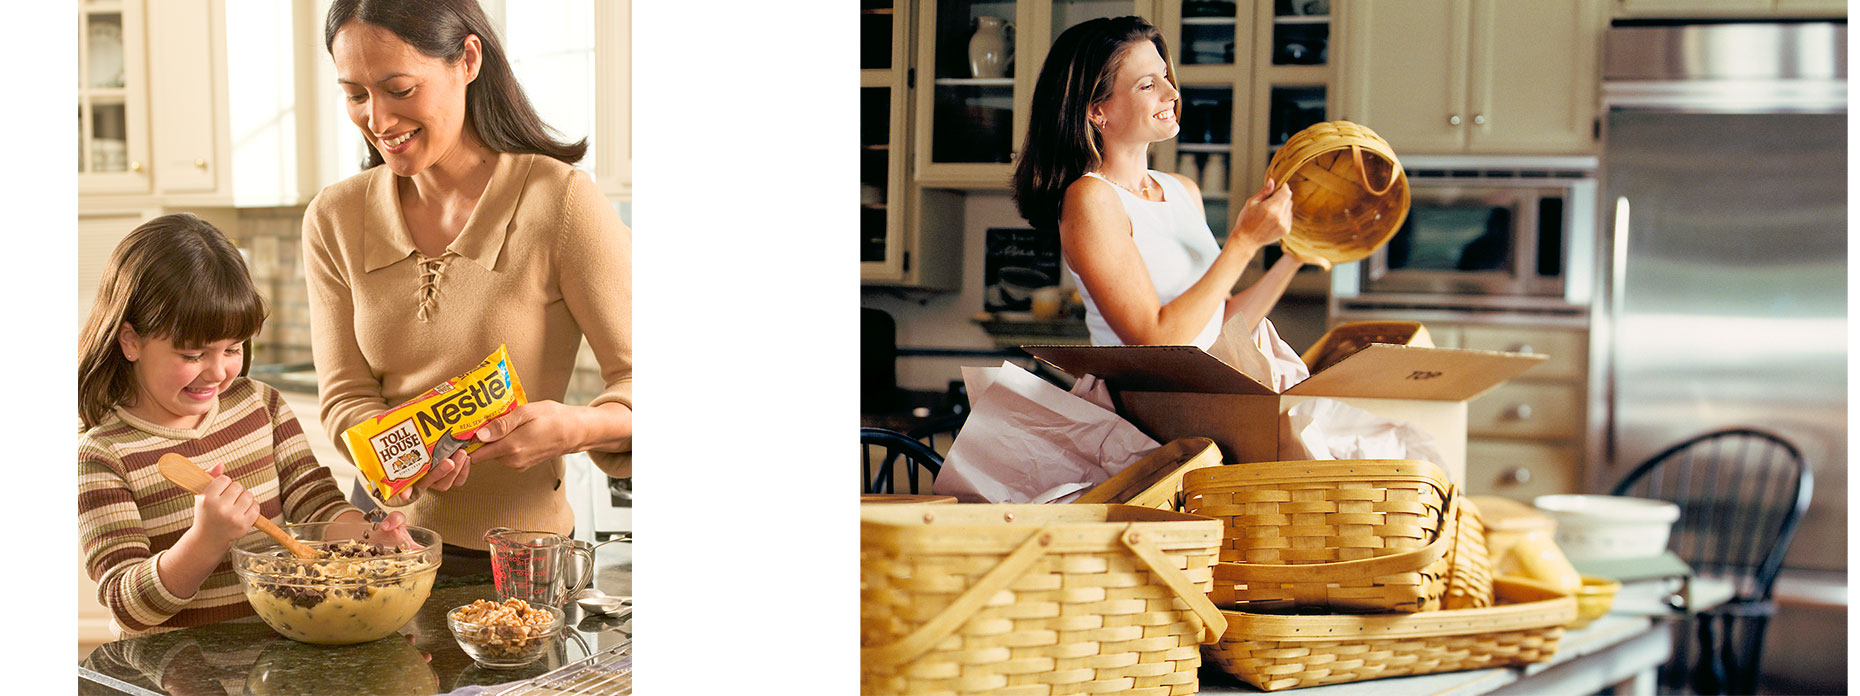 Lifestyle advertisement for Nestle and Lifestyle advertisement for Longaberger baskets